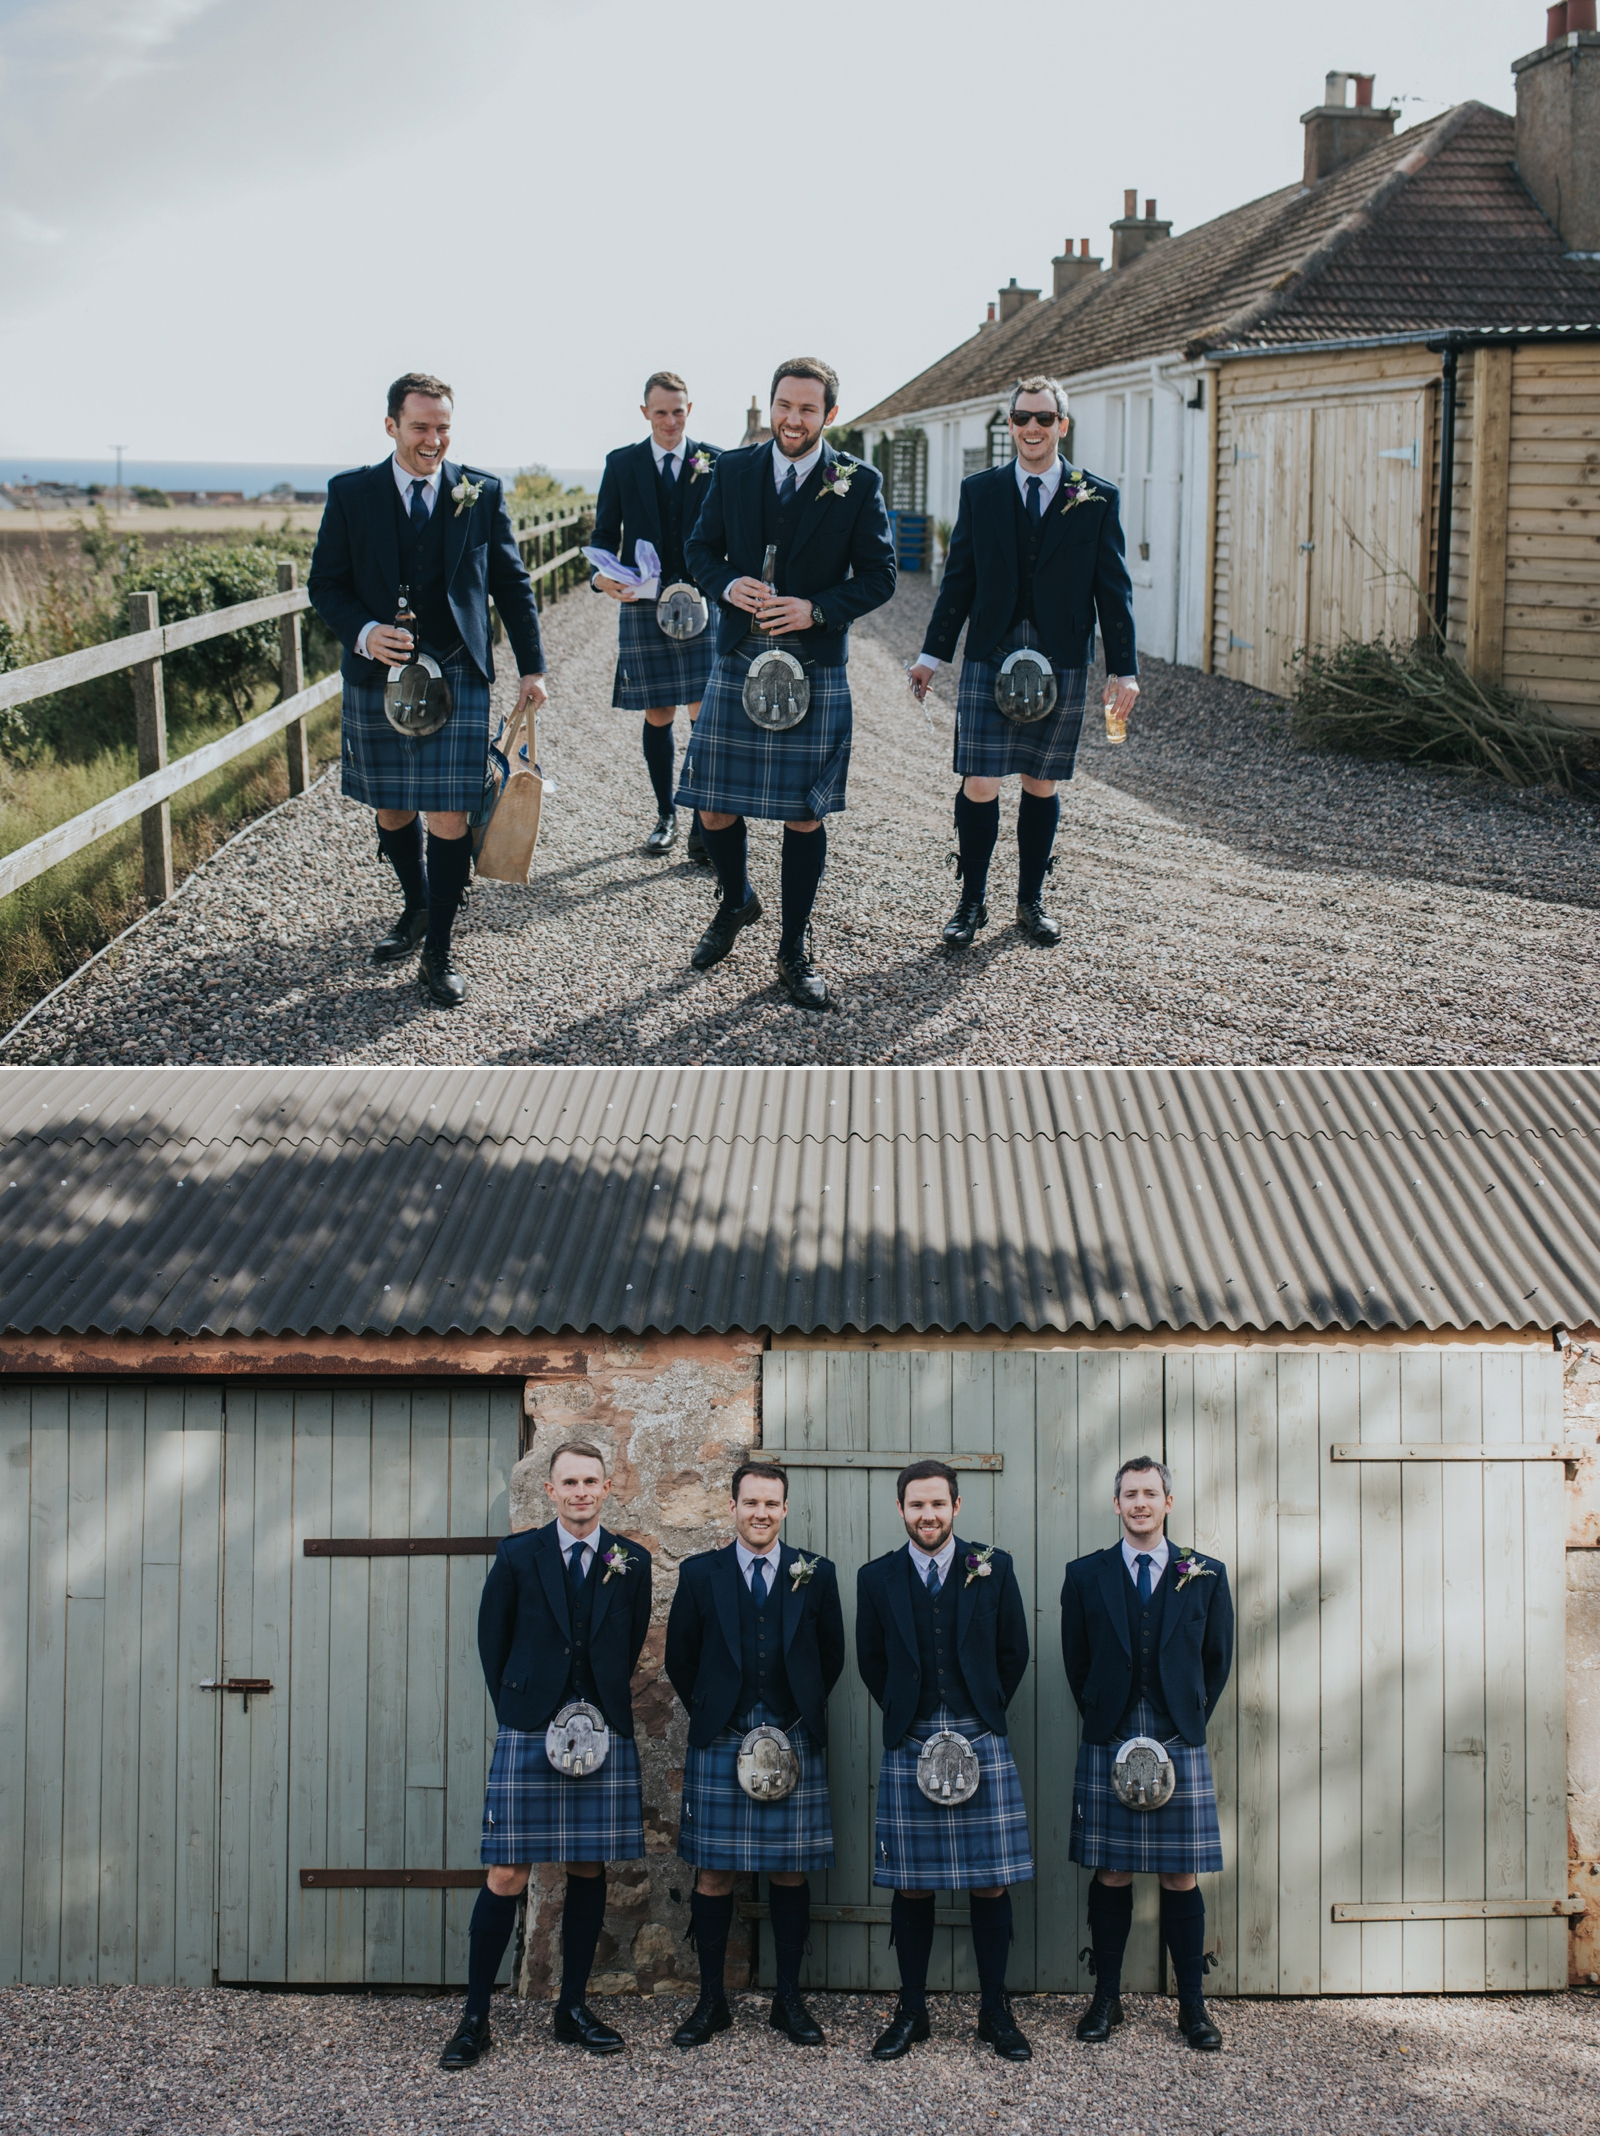 cow-shed-crail-rustic-wedding-gemma-andy-loraine-ross-photographygemma-andy-wedding-0108.jpg